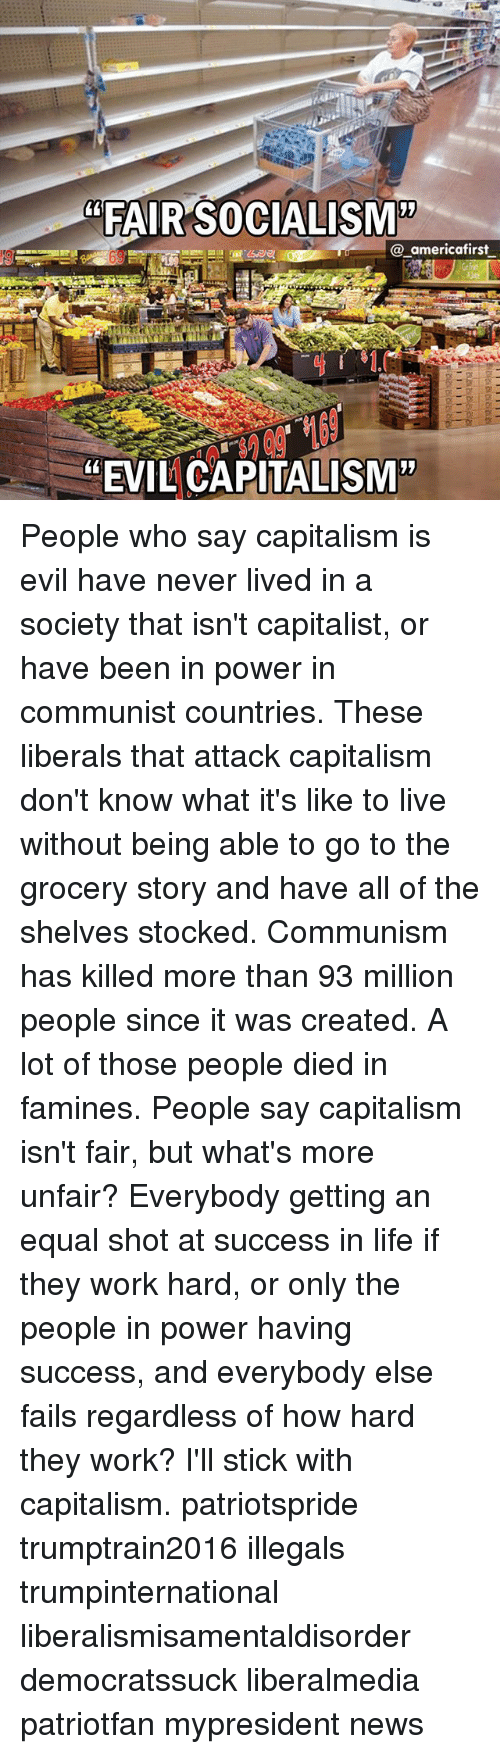 "Equalism: ""FAIR SOCIALISM'""  @_americafirst  ""EVIL CAPITALISM"" People who say capitalism is evil have never lived in a society that isn't capitalist, or have been in power in communist countries. These liberals that attack capitalism don't know what it's like to live without being able to go to the grocery story and have all of the shelves stocked. Communism has killed more than 93 million people since it was created. A lot of those people died in famines. People say capitalism isn't fair, but what's more unfair? Everybody getting an equal shot at success in life if they work hard, or only the people in power having success, and everybody else fails regardless of how hard they work? I'll stick with capitalism. patriotspride trumptrain2016 illegals trumpinternational liberalismisamentaldisorder democratssuck liberalmedia patriotfan mypresident news"